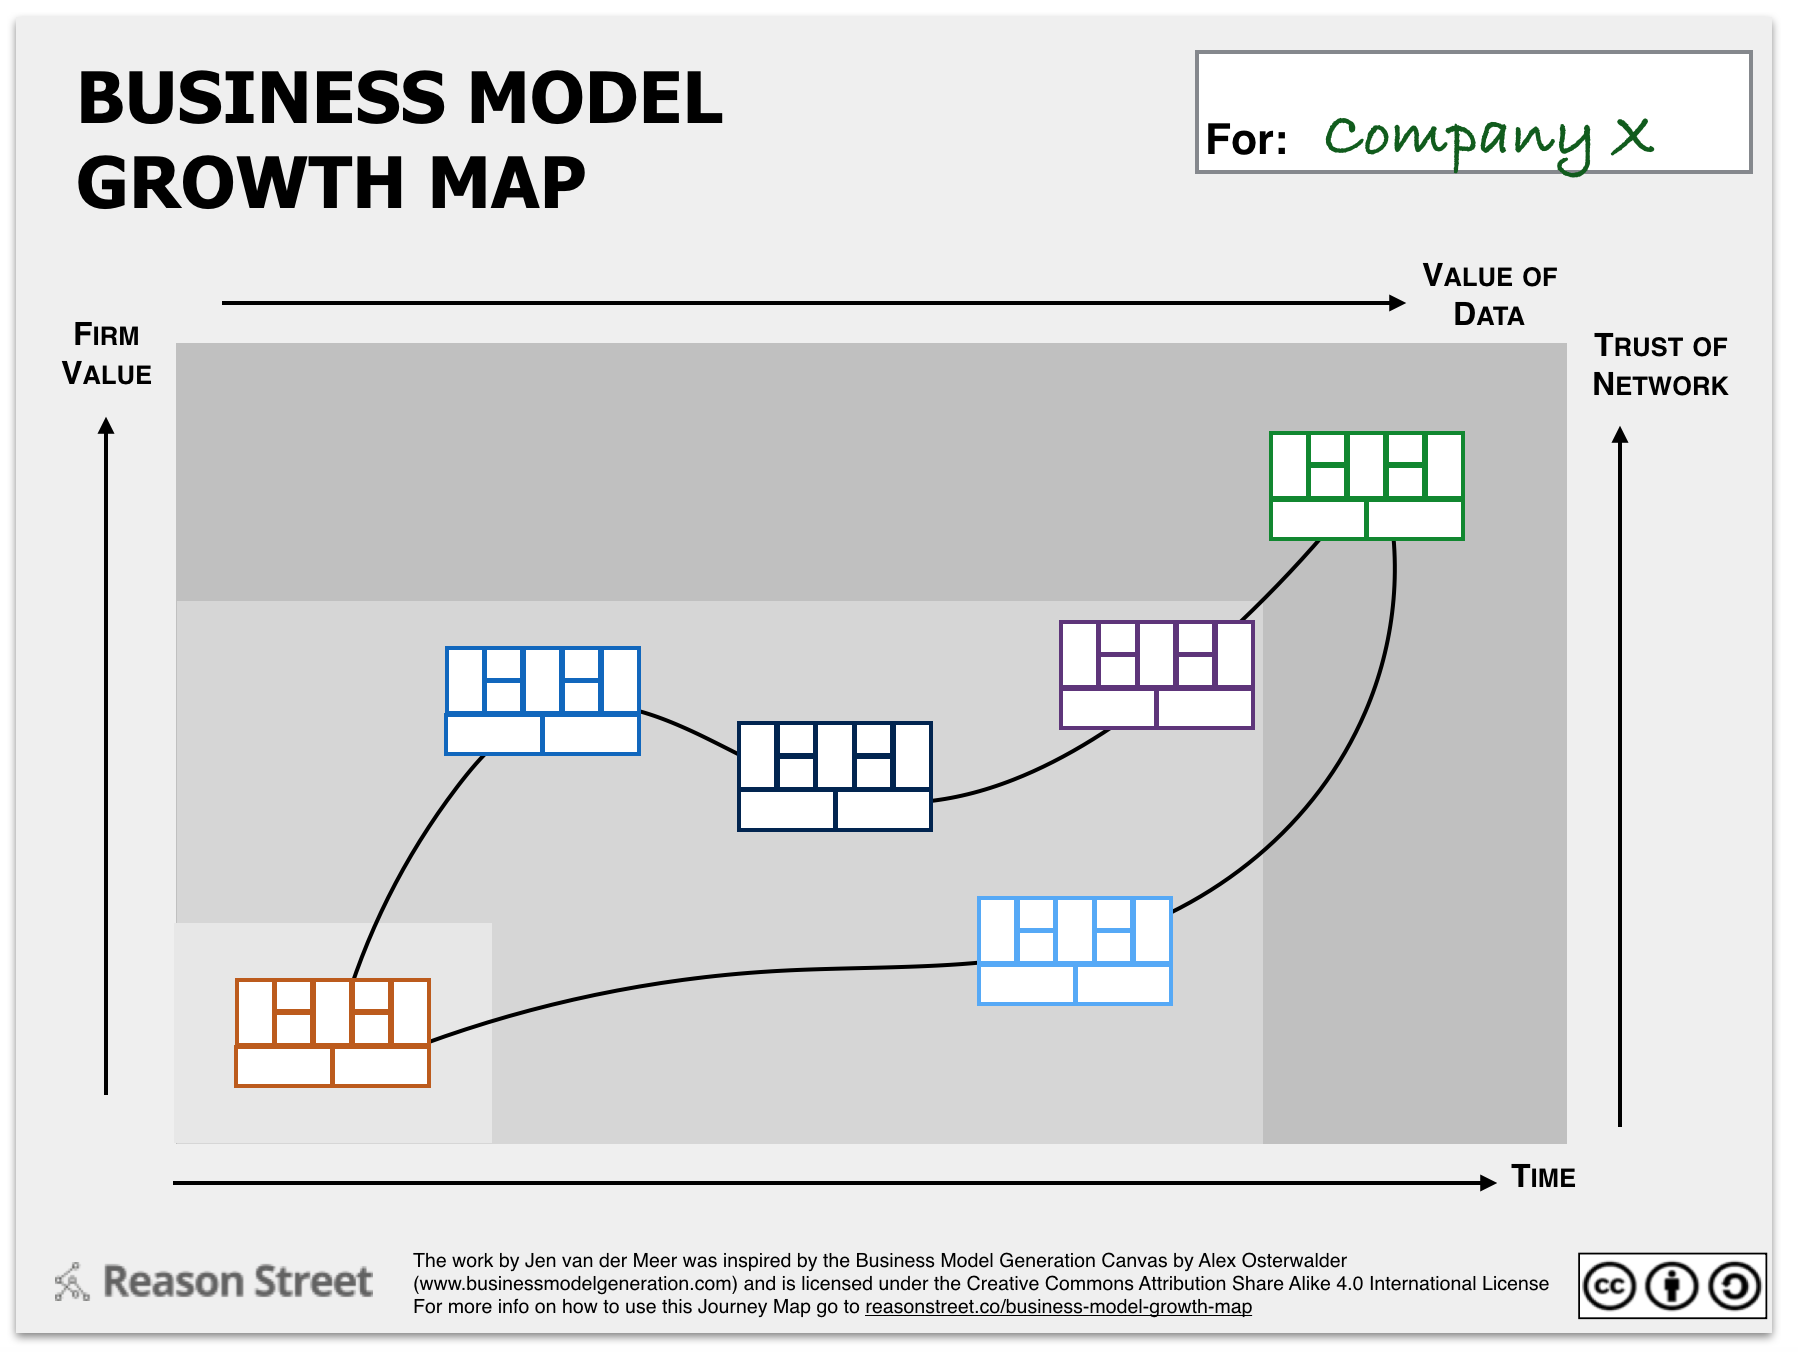 Business Model Growth Options